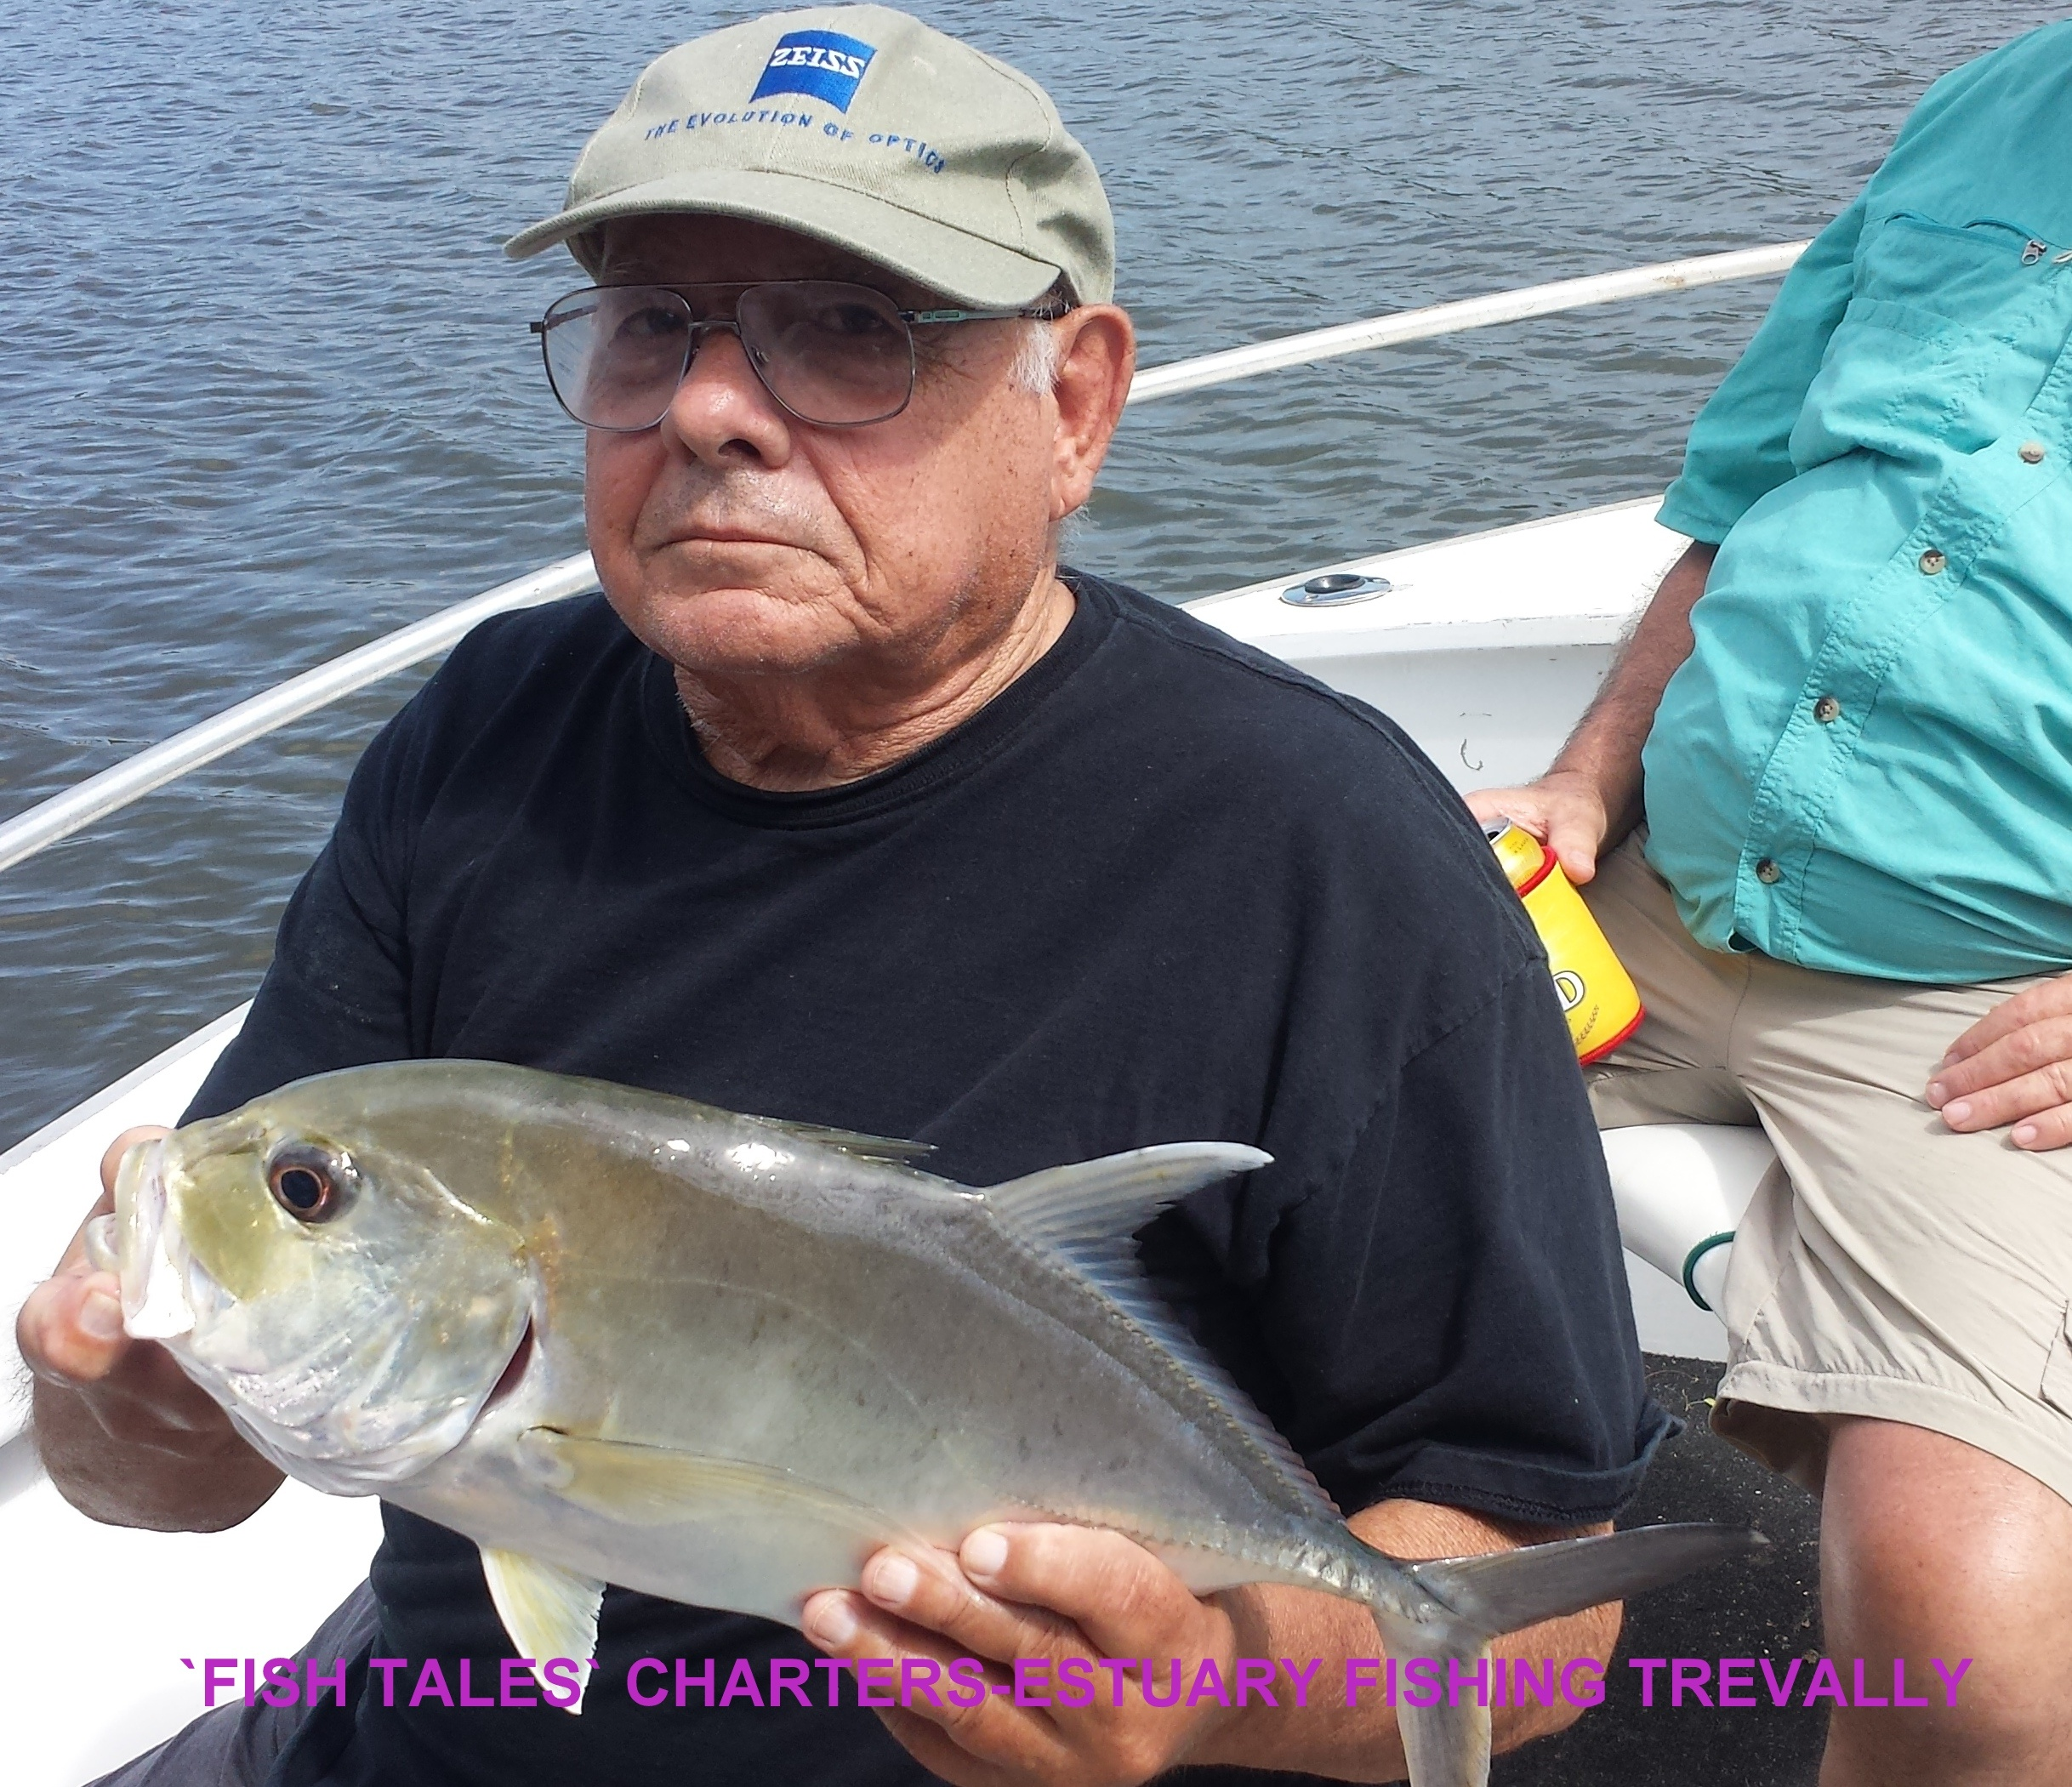 Fish tales charters trinity beach tourism town find for Fish tales charters